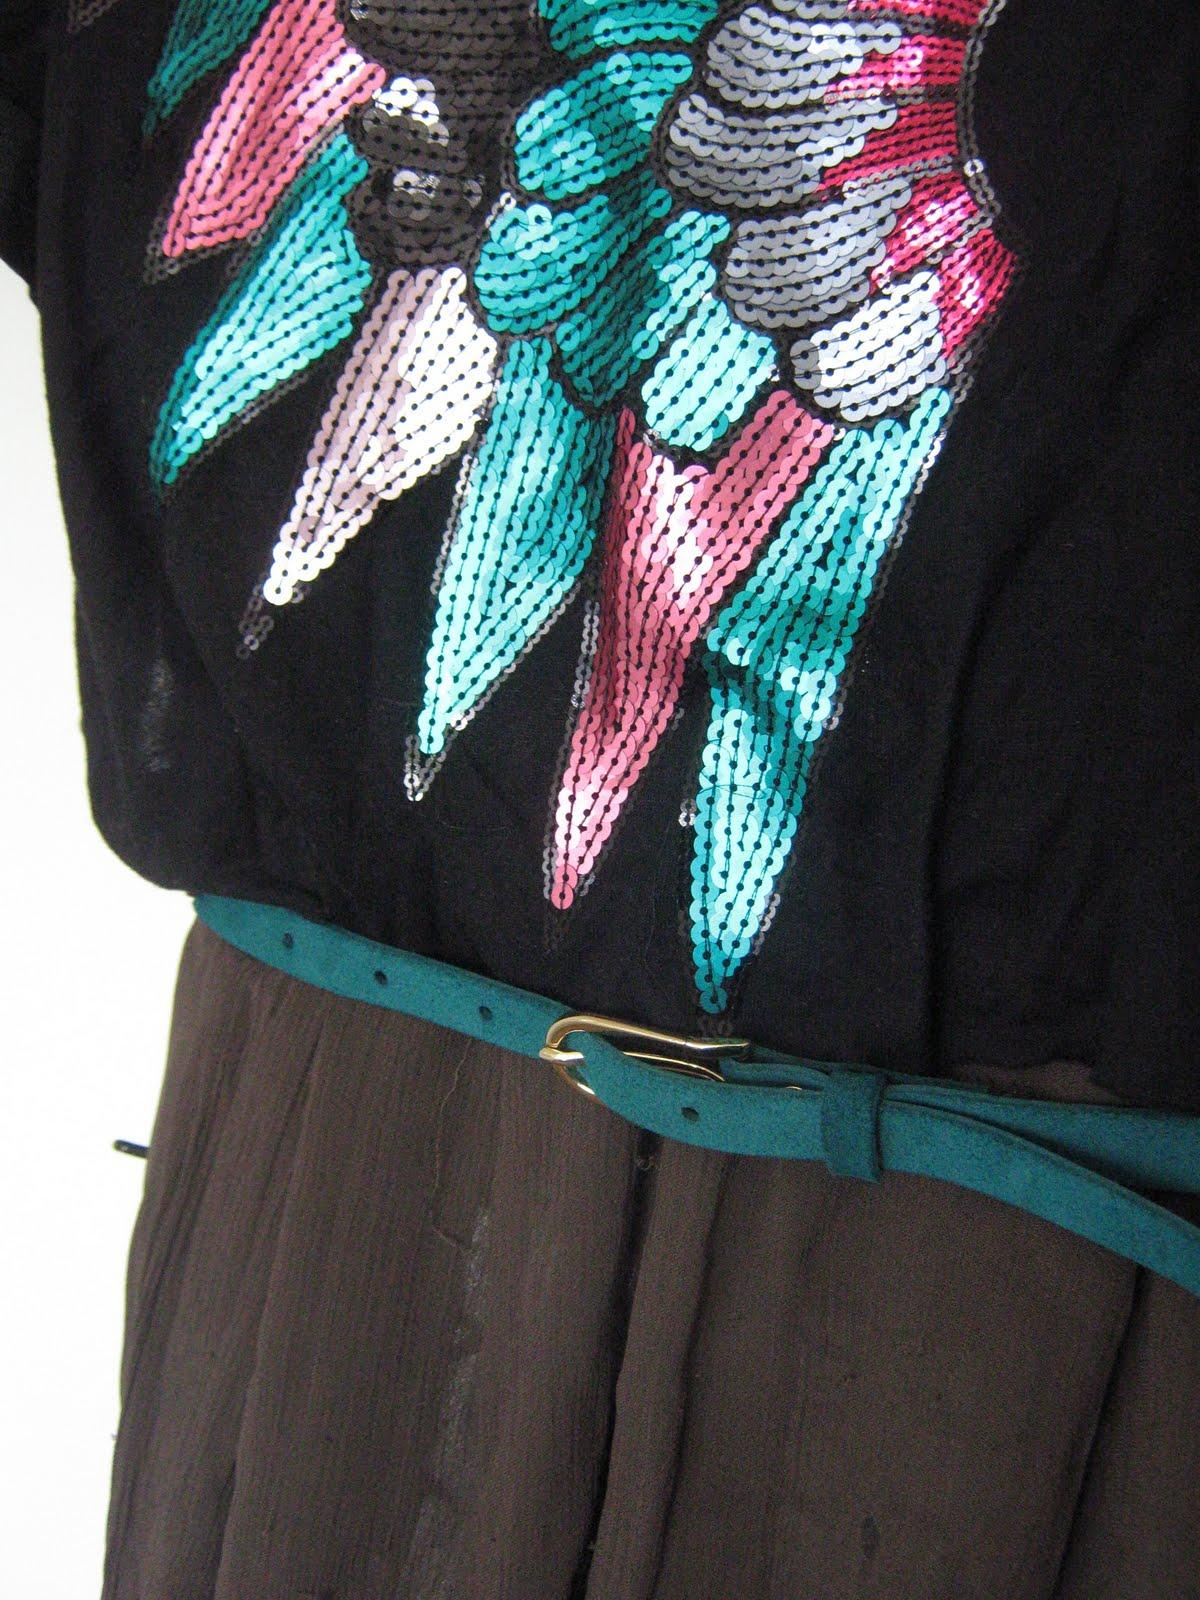 Detail of the peacock shirt